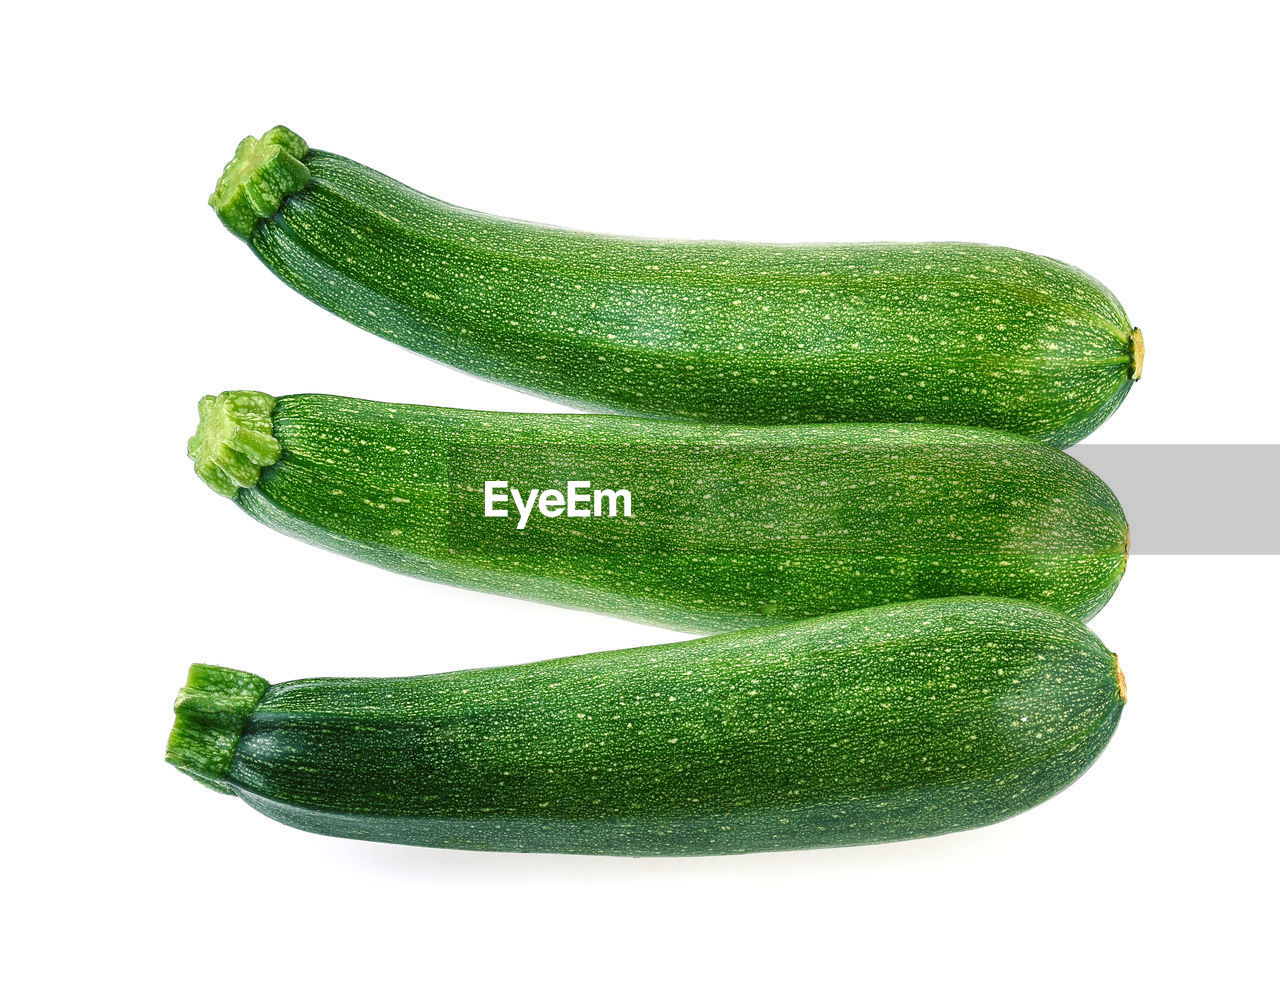 Close-up of cucumbers against white background